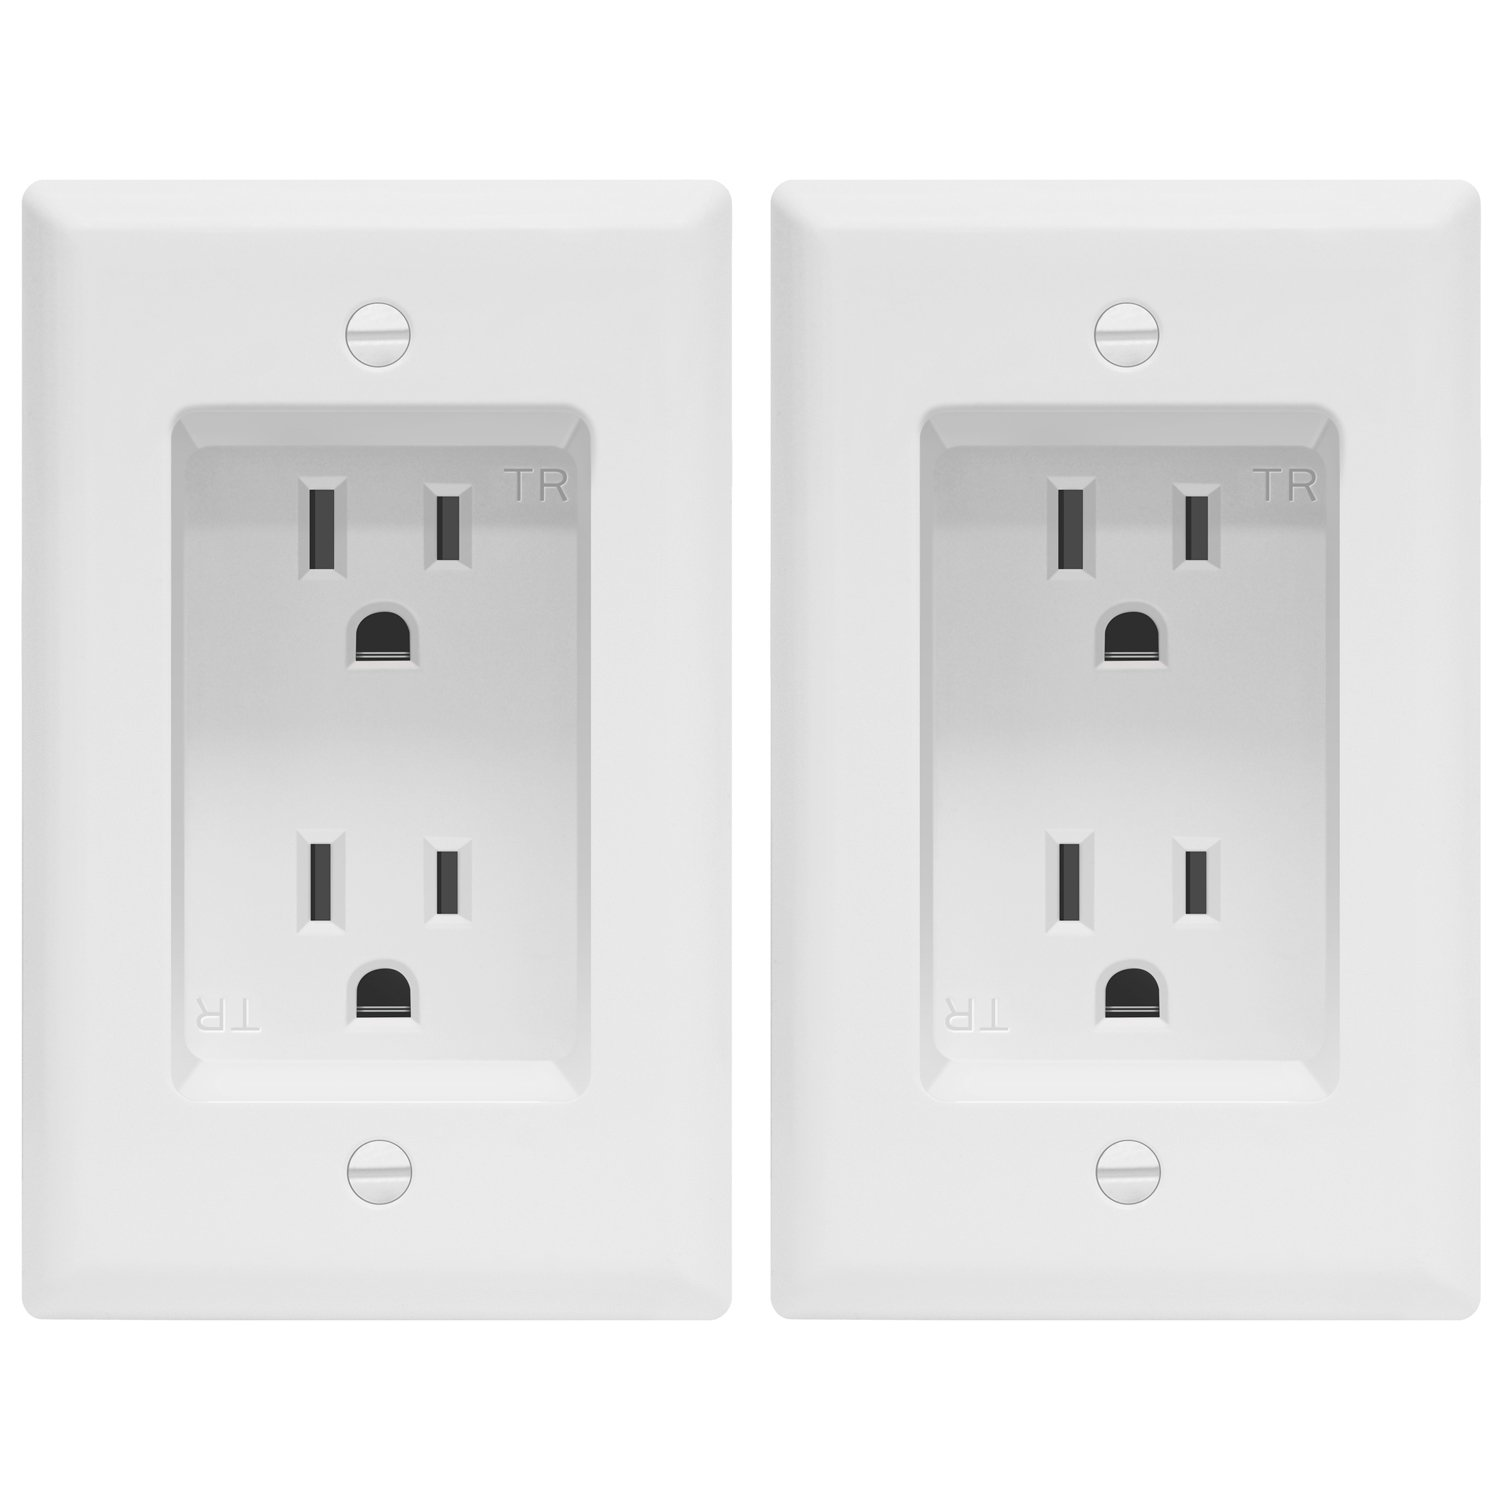 TOPGREENER Recessed Duplex Receptacle Power Outlet (2 Pack), 1-Gang Tamper-Resistant Receptacle, Residential Grade 125VAC/ 15A, White TG15RD31-2PCS